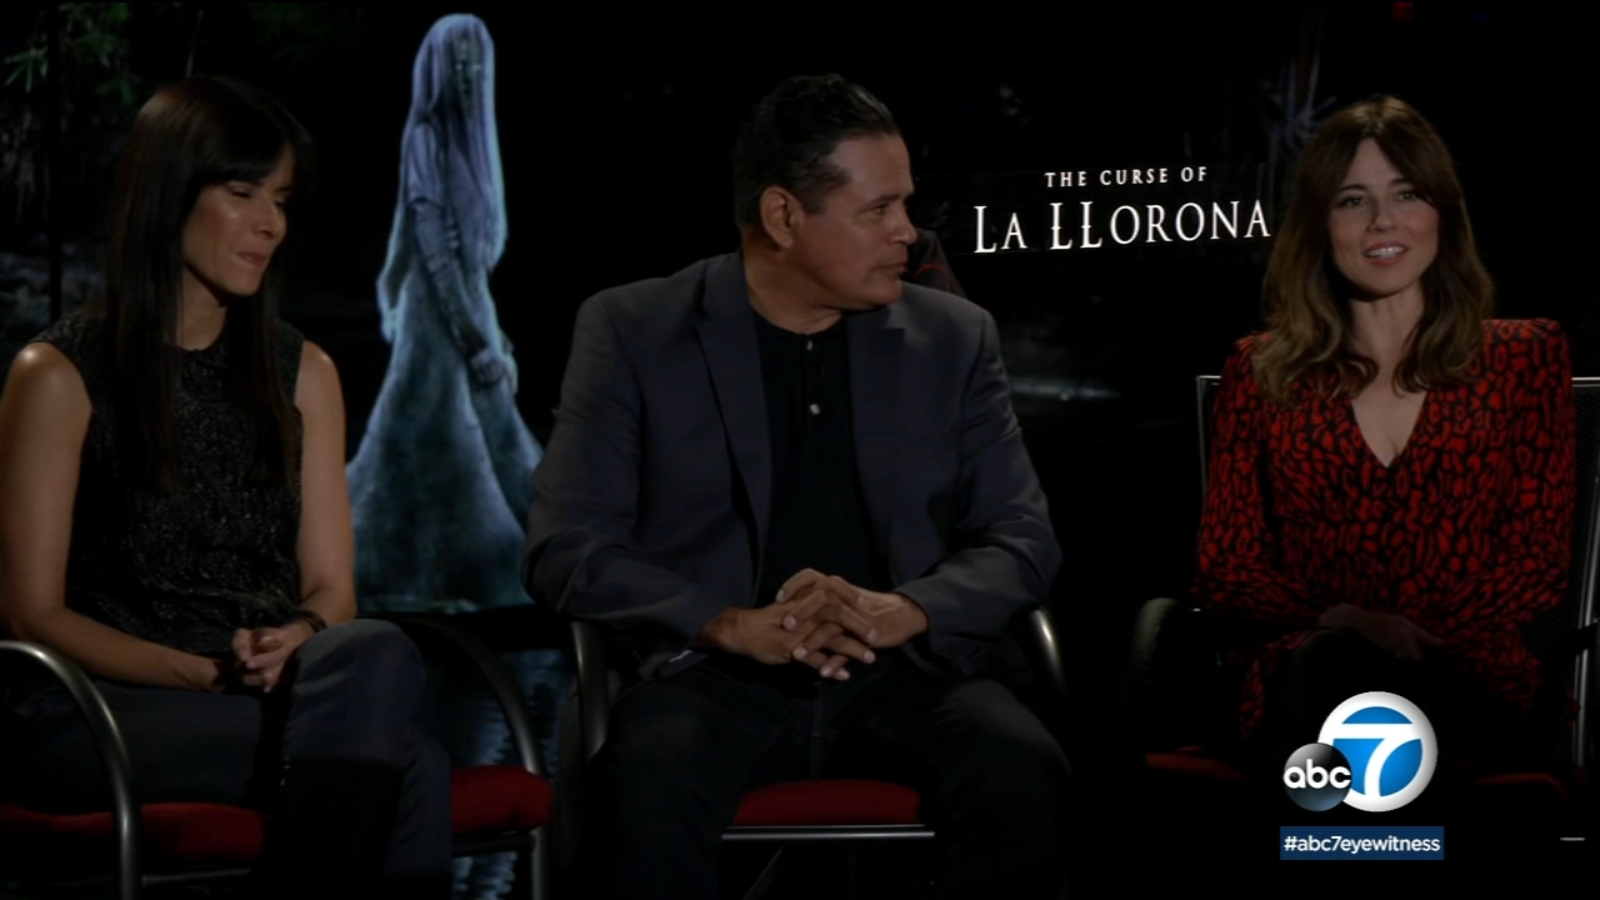 'The Curse of La Llorona' scares up weekend box office win in its debut